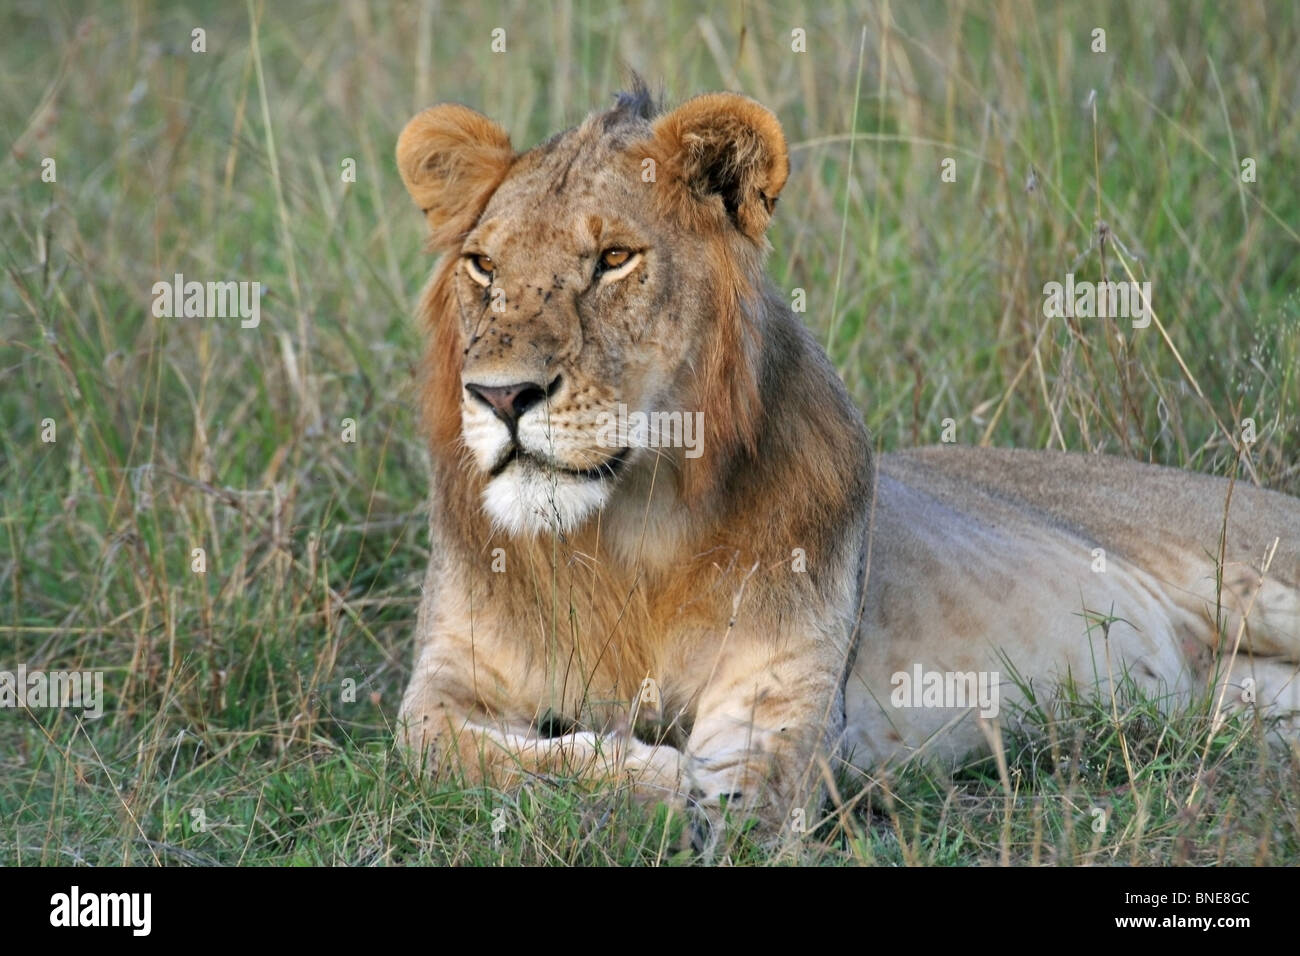 A young male Lion portrait shot. Picture taken in Masai Mara National Reserve, Kenya, East Africa. Stock Photo